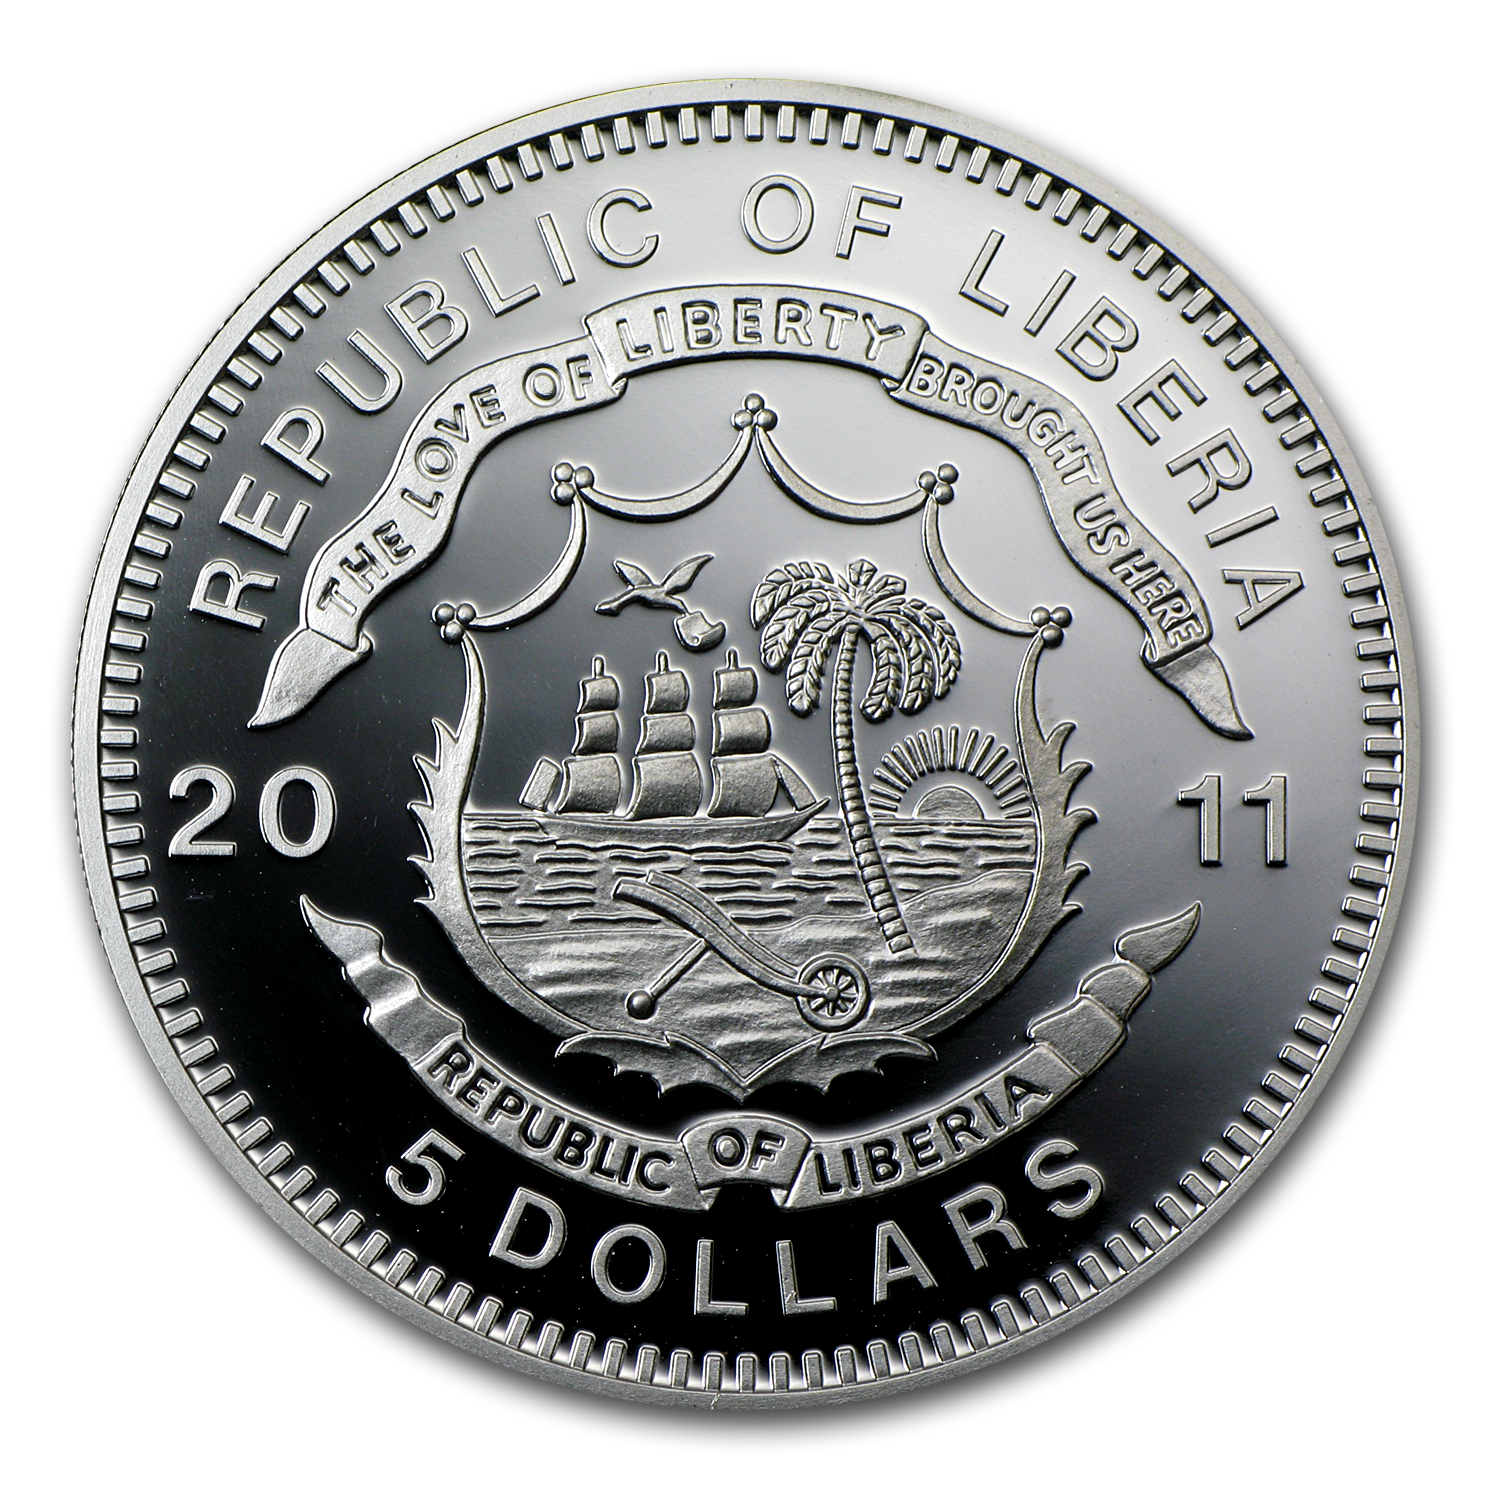 2011 Liberia Silver $5 Adler Locomotive Proof